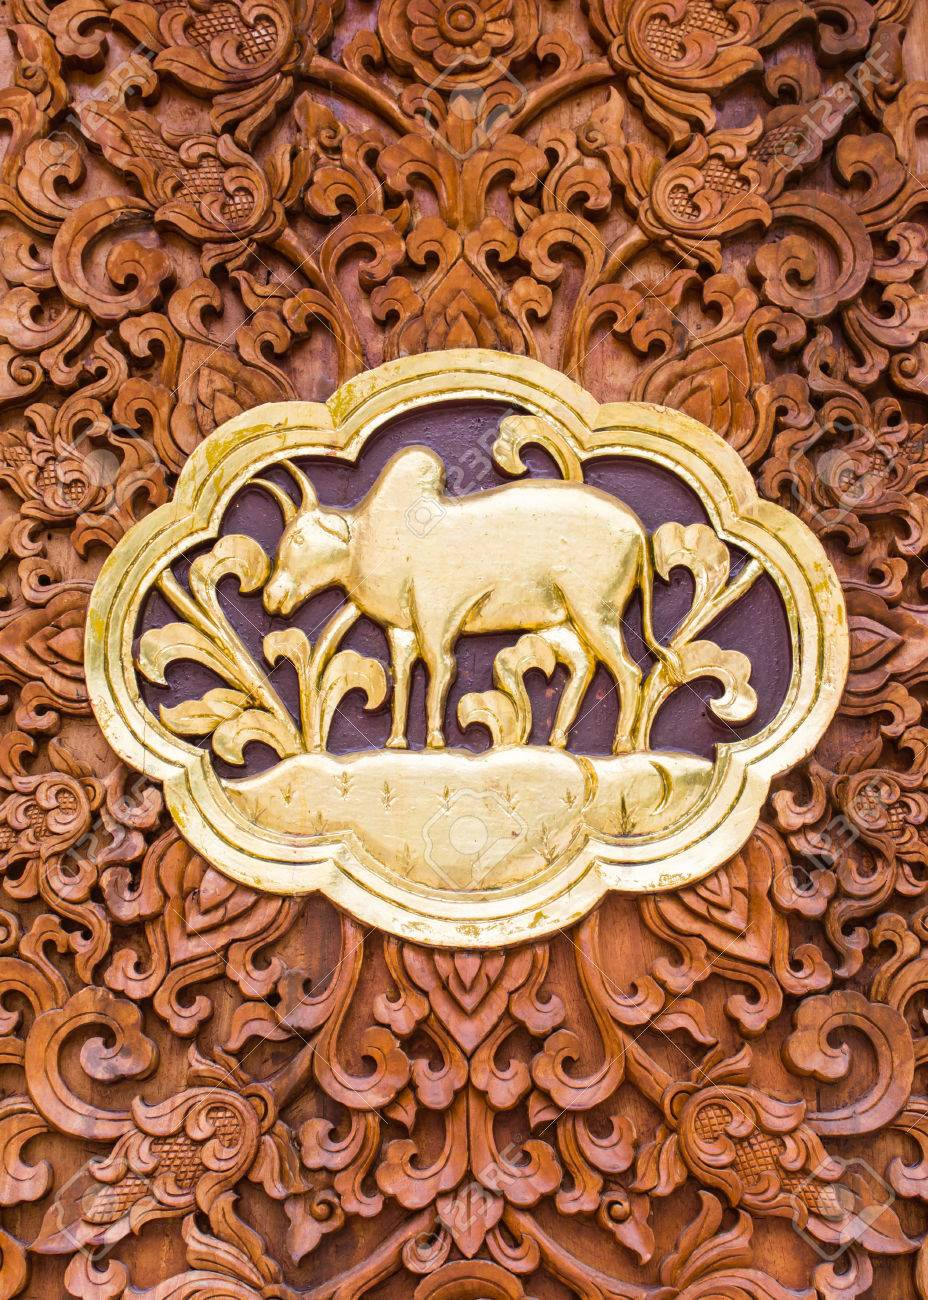 Cow Wood Carving Wall Sculptures In Thai Temple Stock Photo, Picture ...